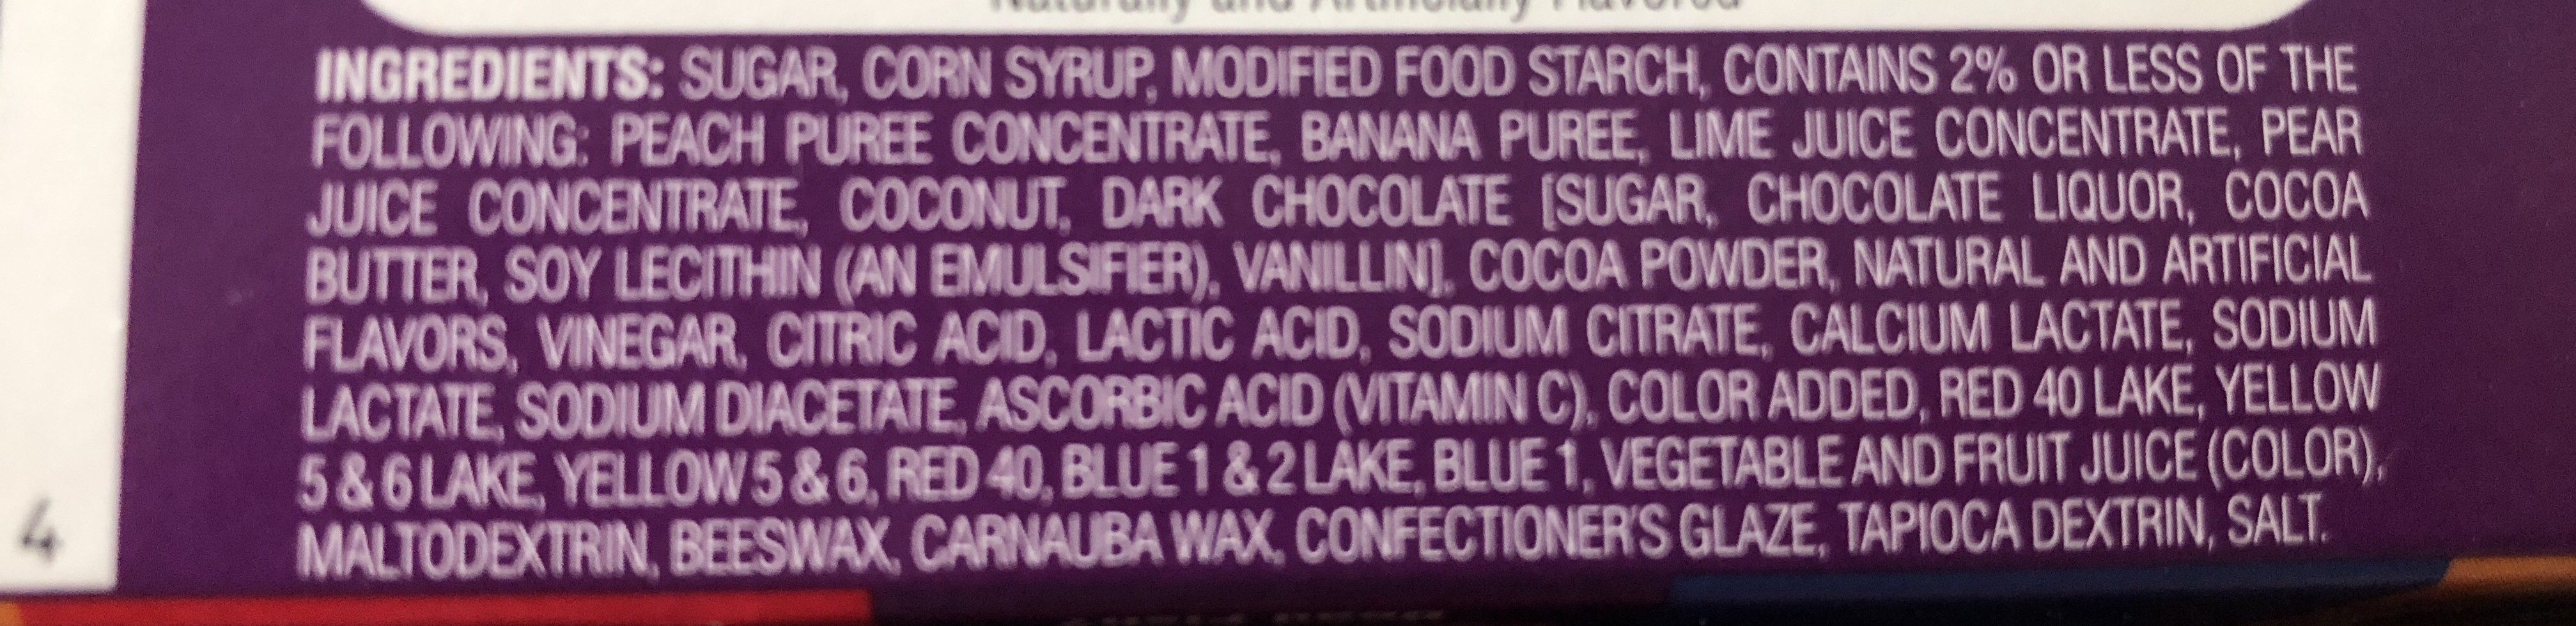 Jelly beans, stink bug, toasted marshmallow, dirty dishwater, birthday cake, rotten egg, buttered popcorn, toothpaste, berry blue, barf, peach, canned dog food, chocolate pudding, booger, juicy pear, spoiled milk, coconut, stinky socks, tutti-fruitti, dea - Ingredients - en